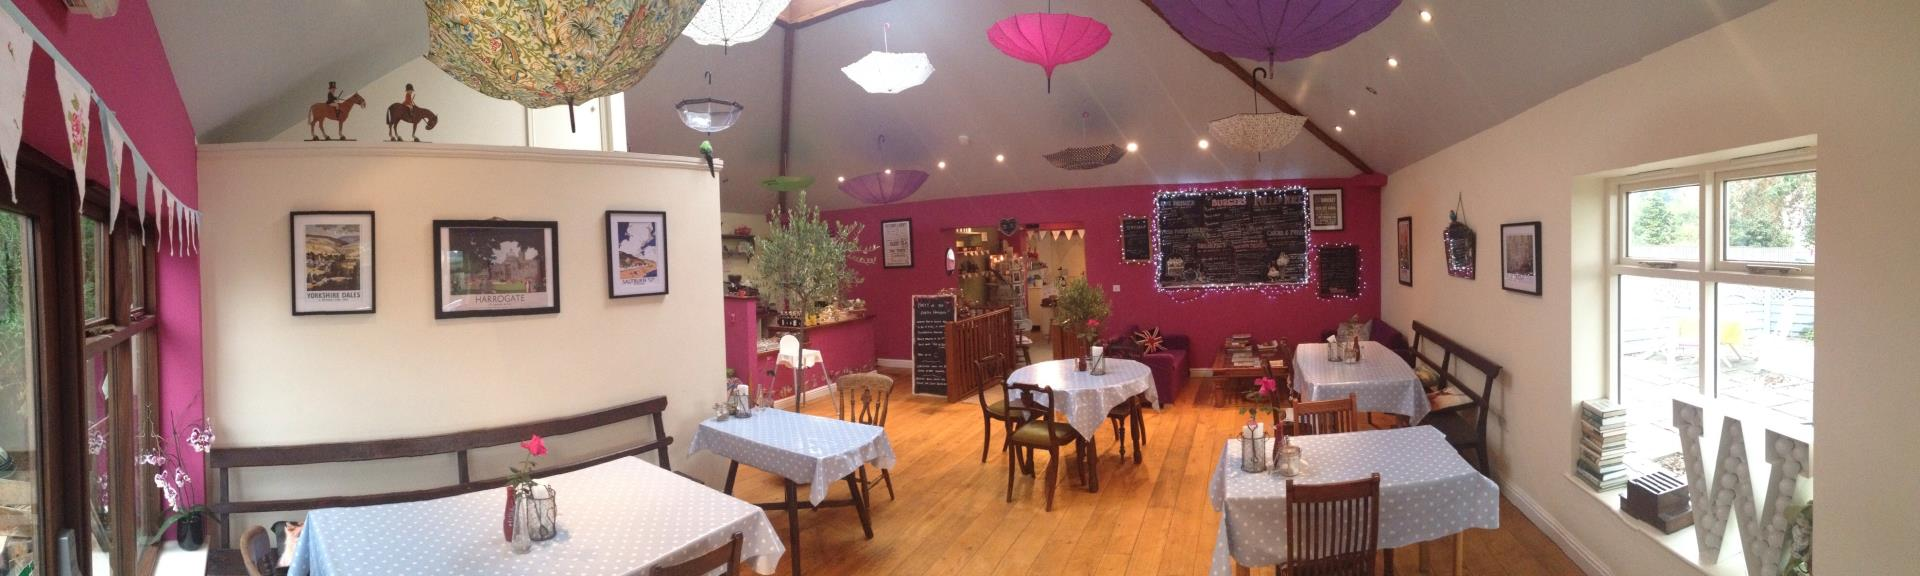 Picture of the Purple Partridge - Main cafe area